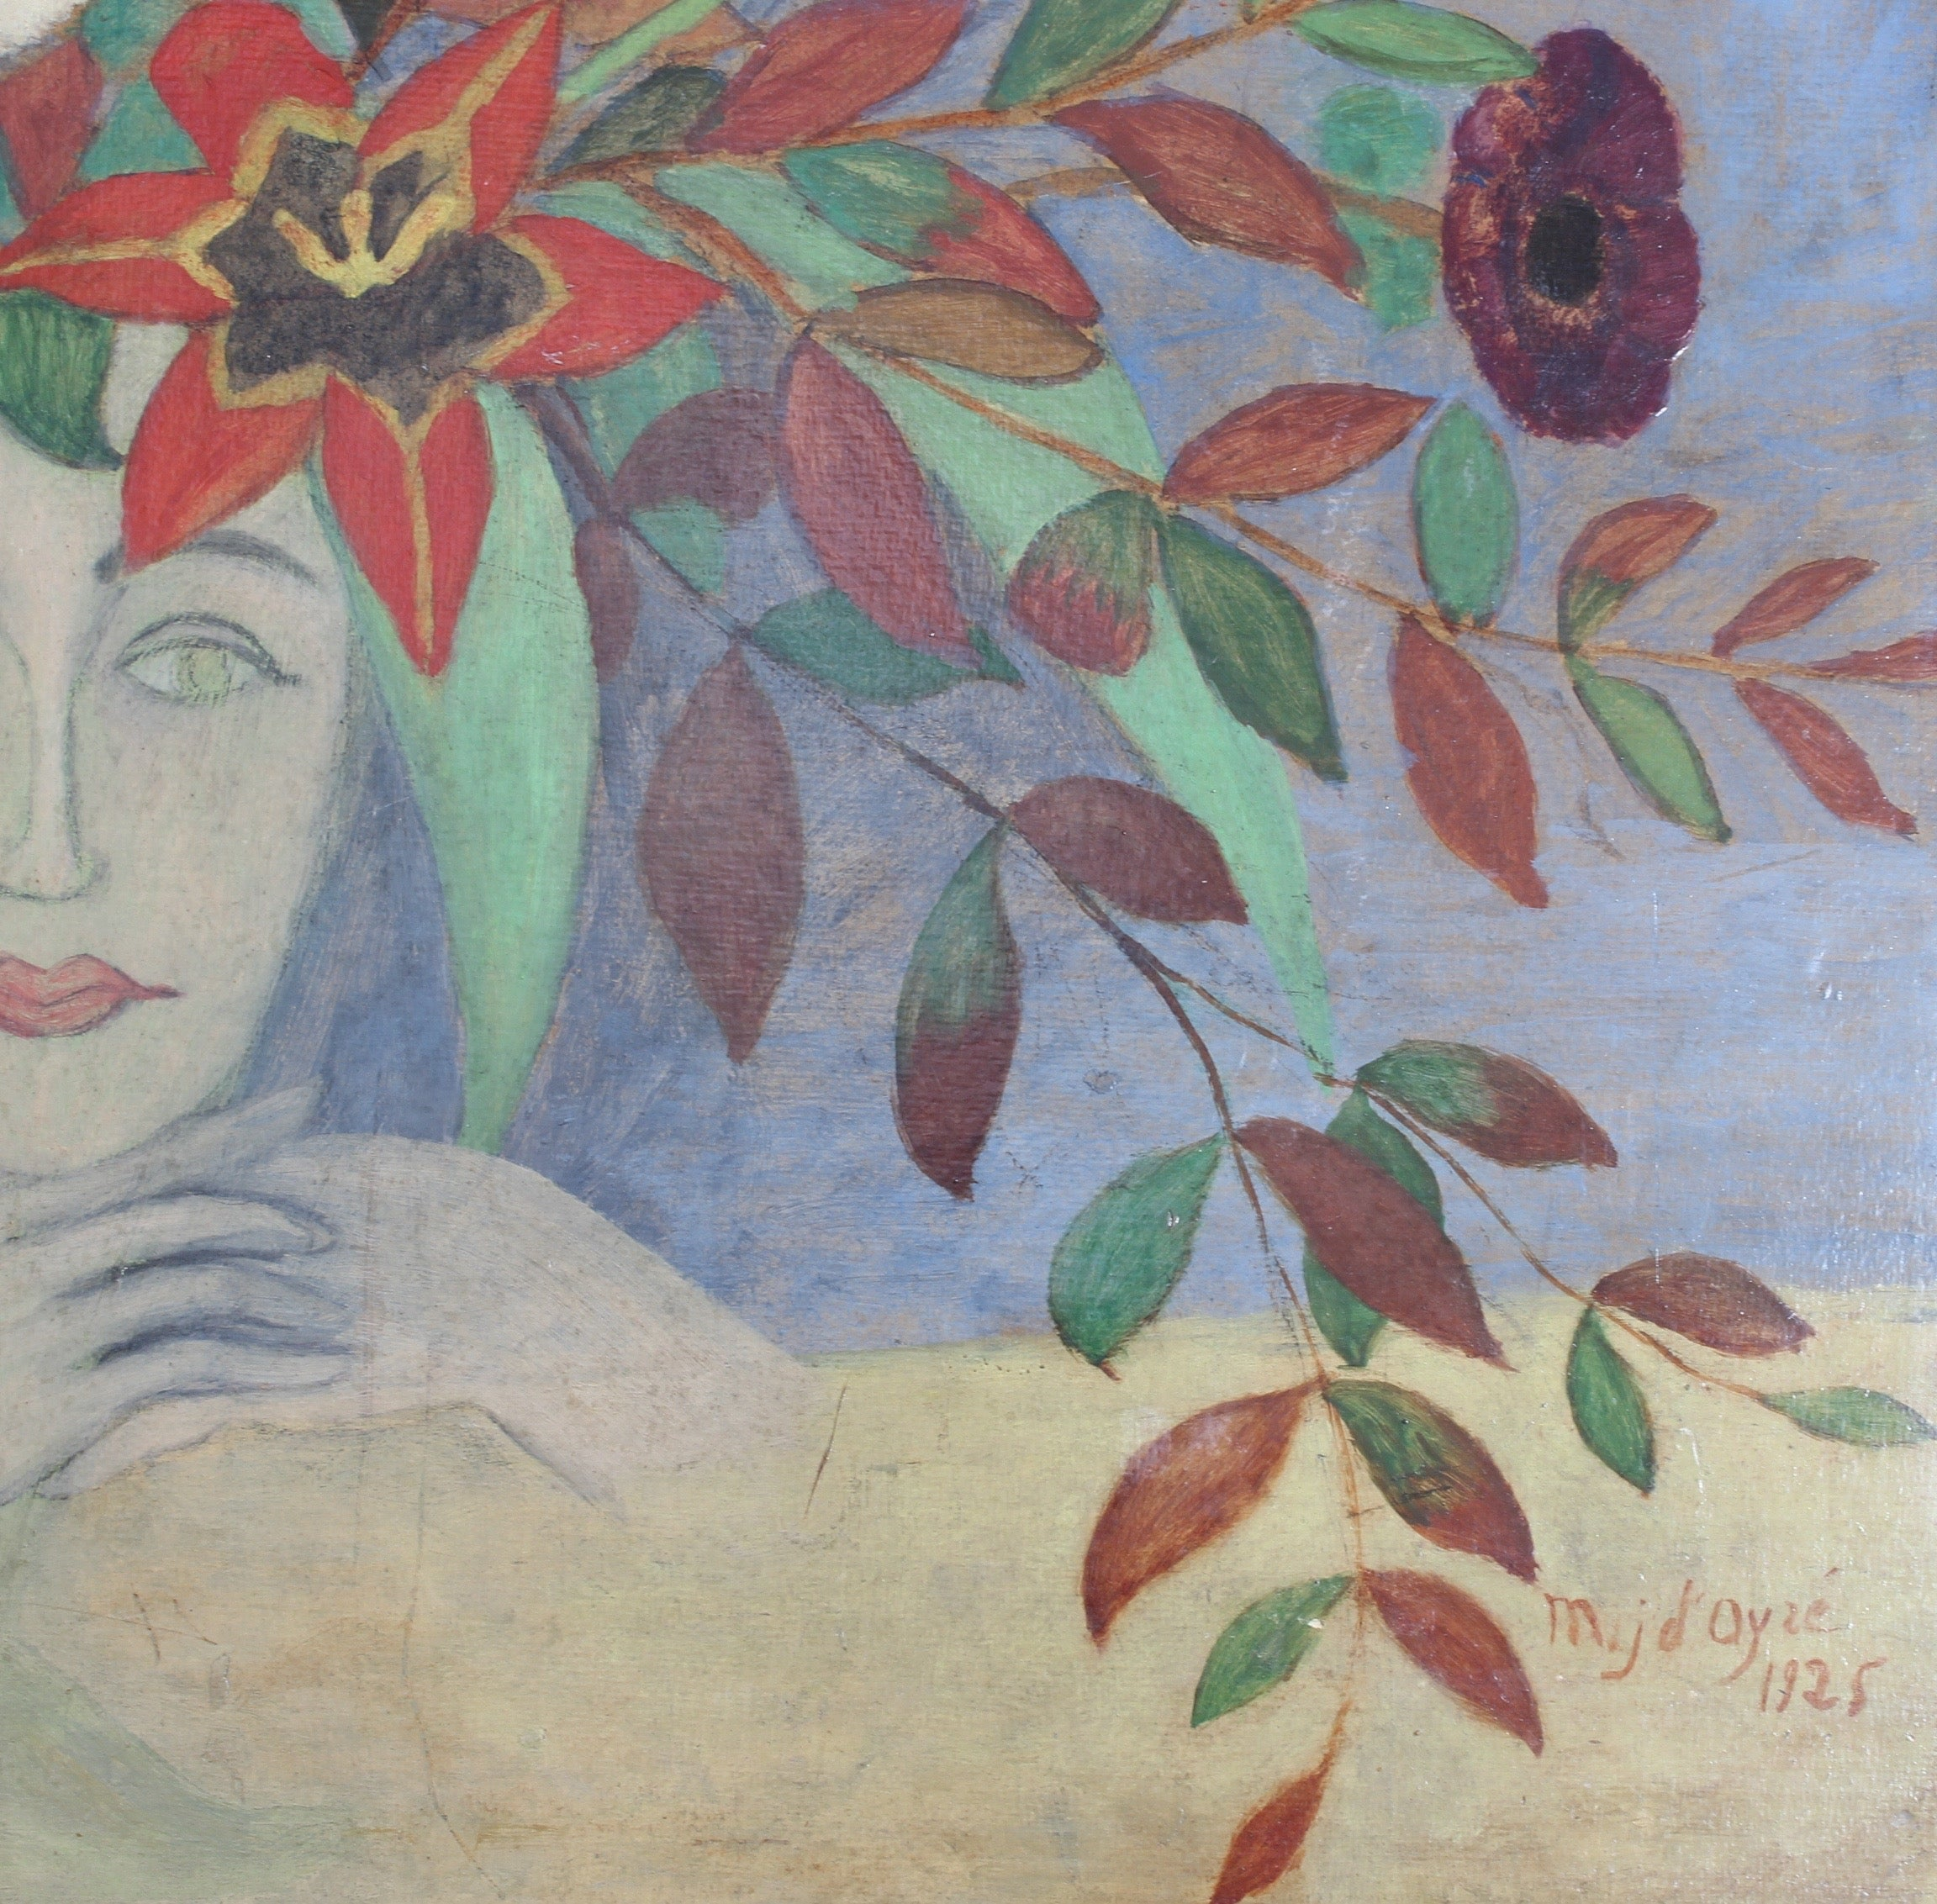 'Flowered Lady' by M J d'Ayzé (1925)